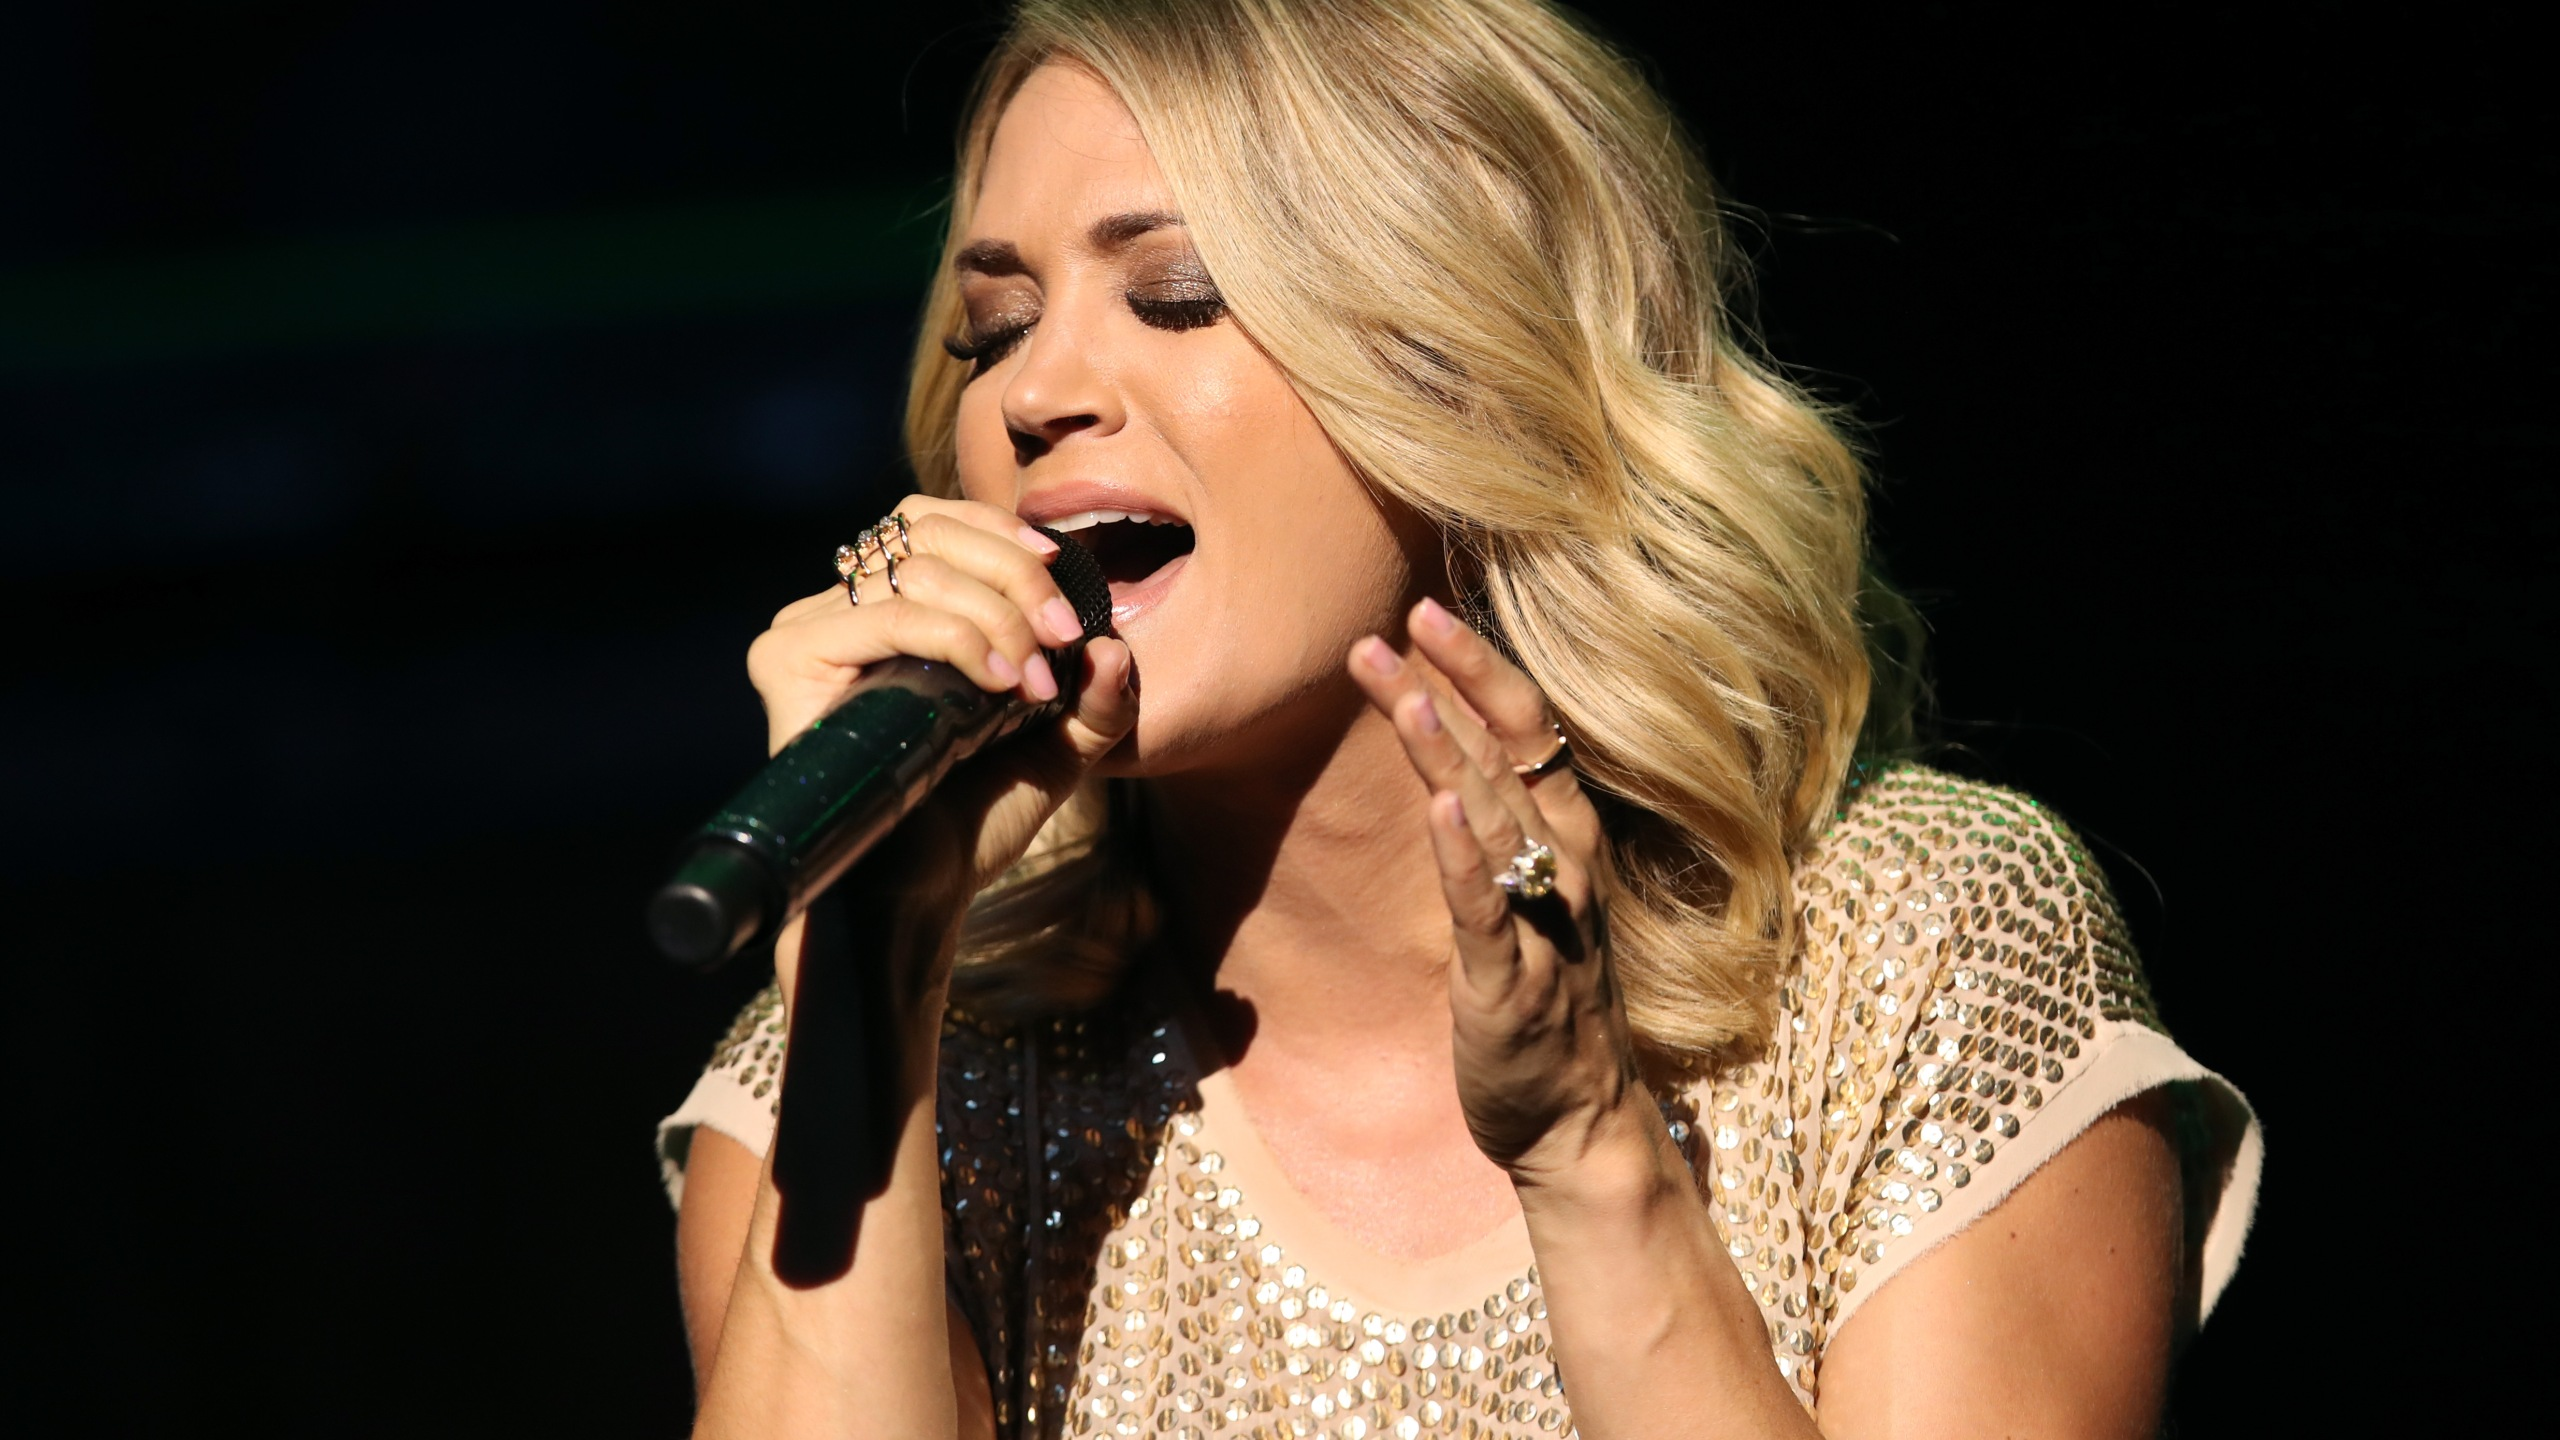 Carrie Underwood performs at The Orpheum Theatre on Thursday, June 29, 2017 in Los Angeles. (Credit: Christopher Polk/Getty Images for Mastercard)